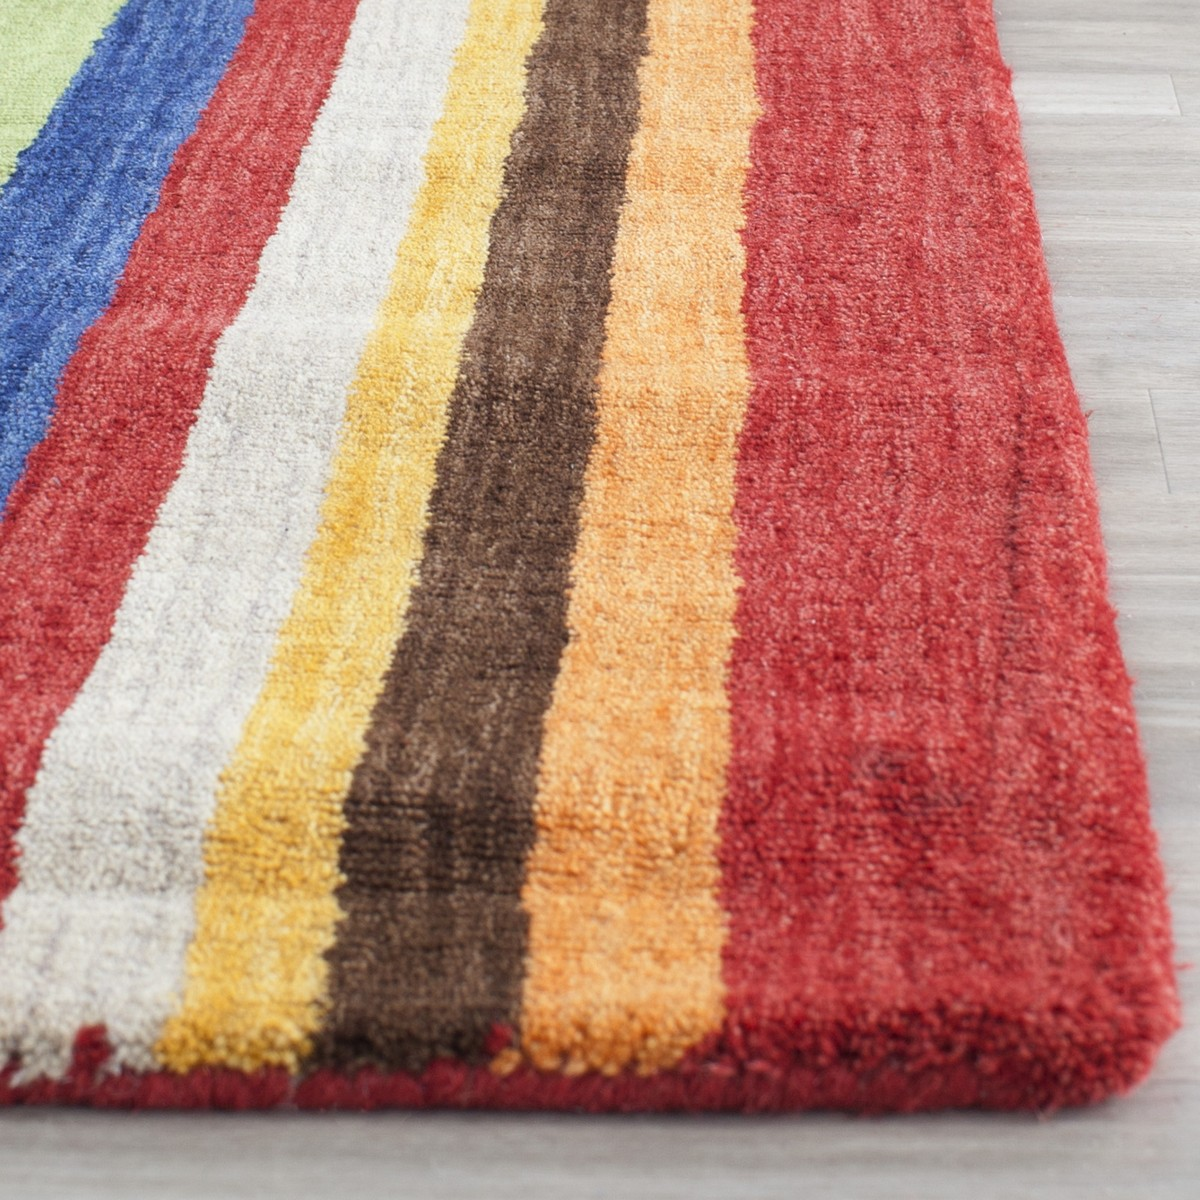 Rug Him582a Himalaya Area Rugs By Safavieh